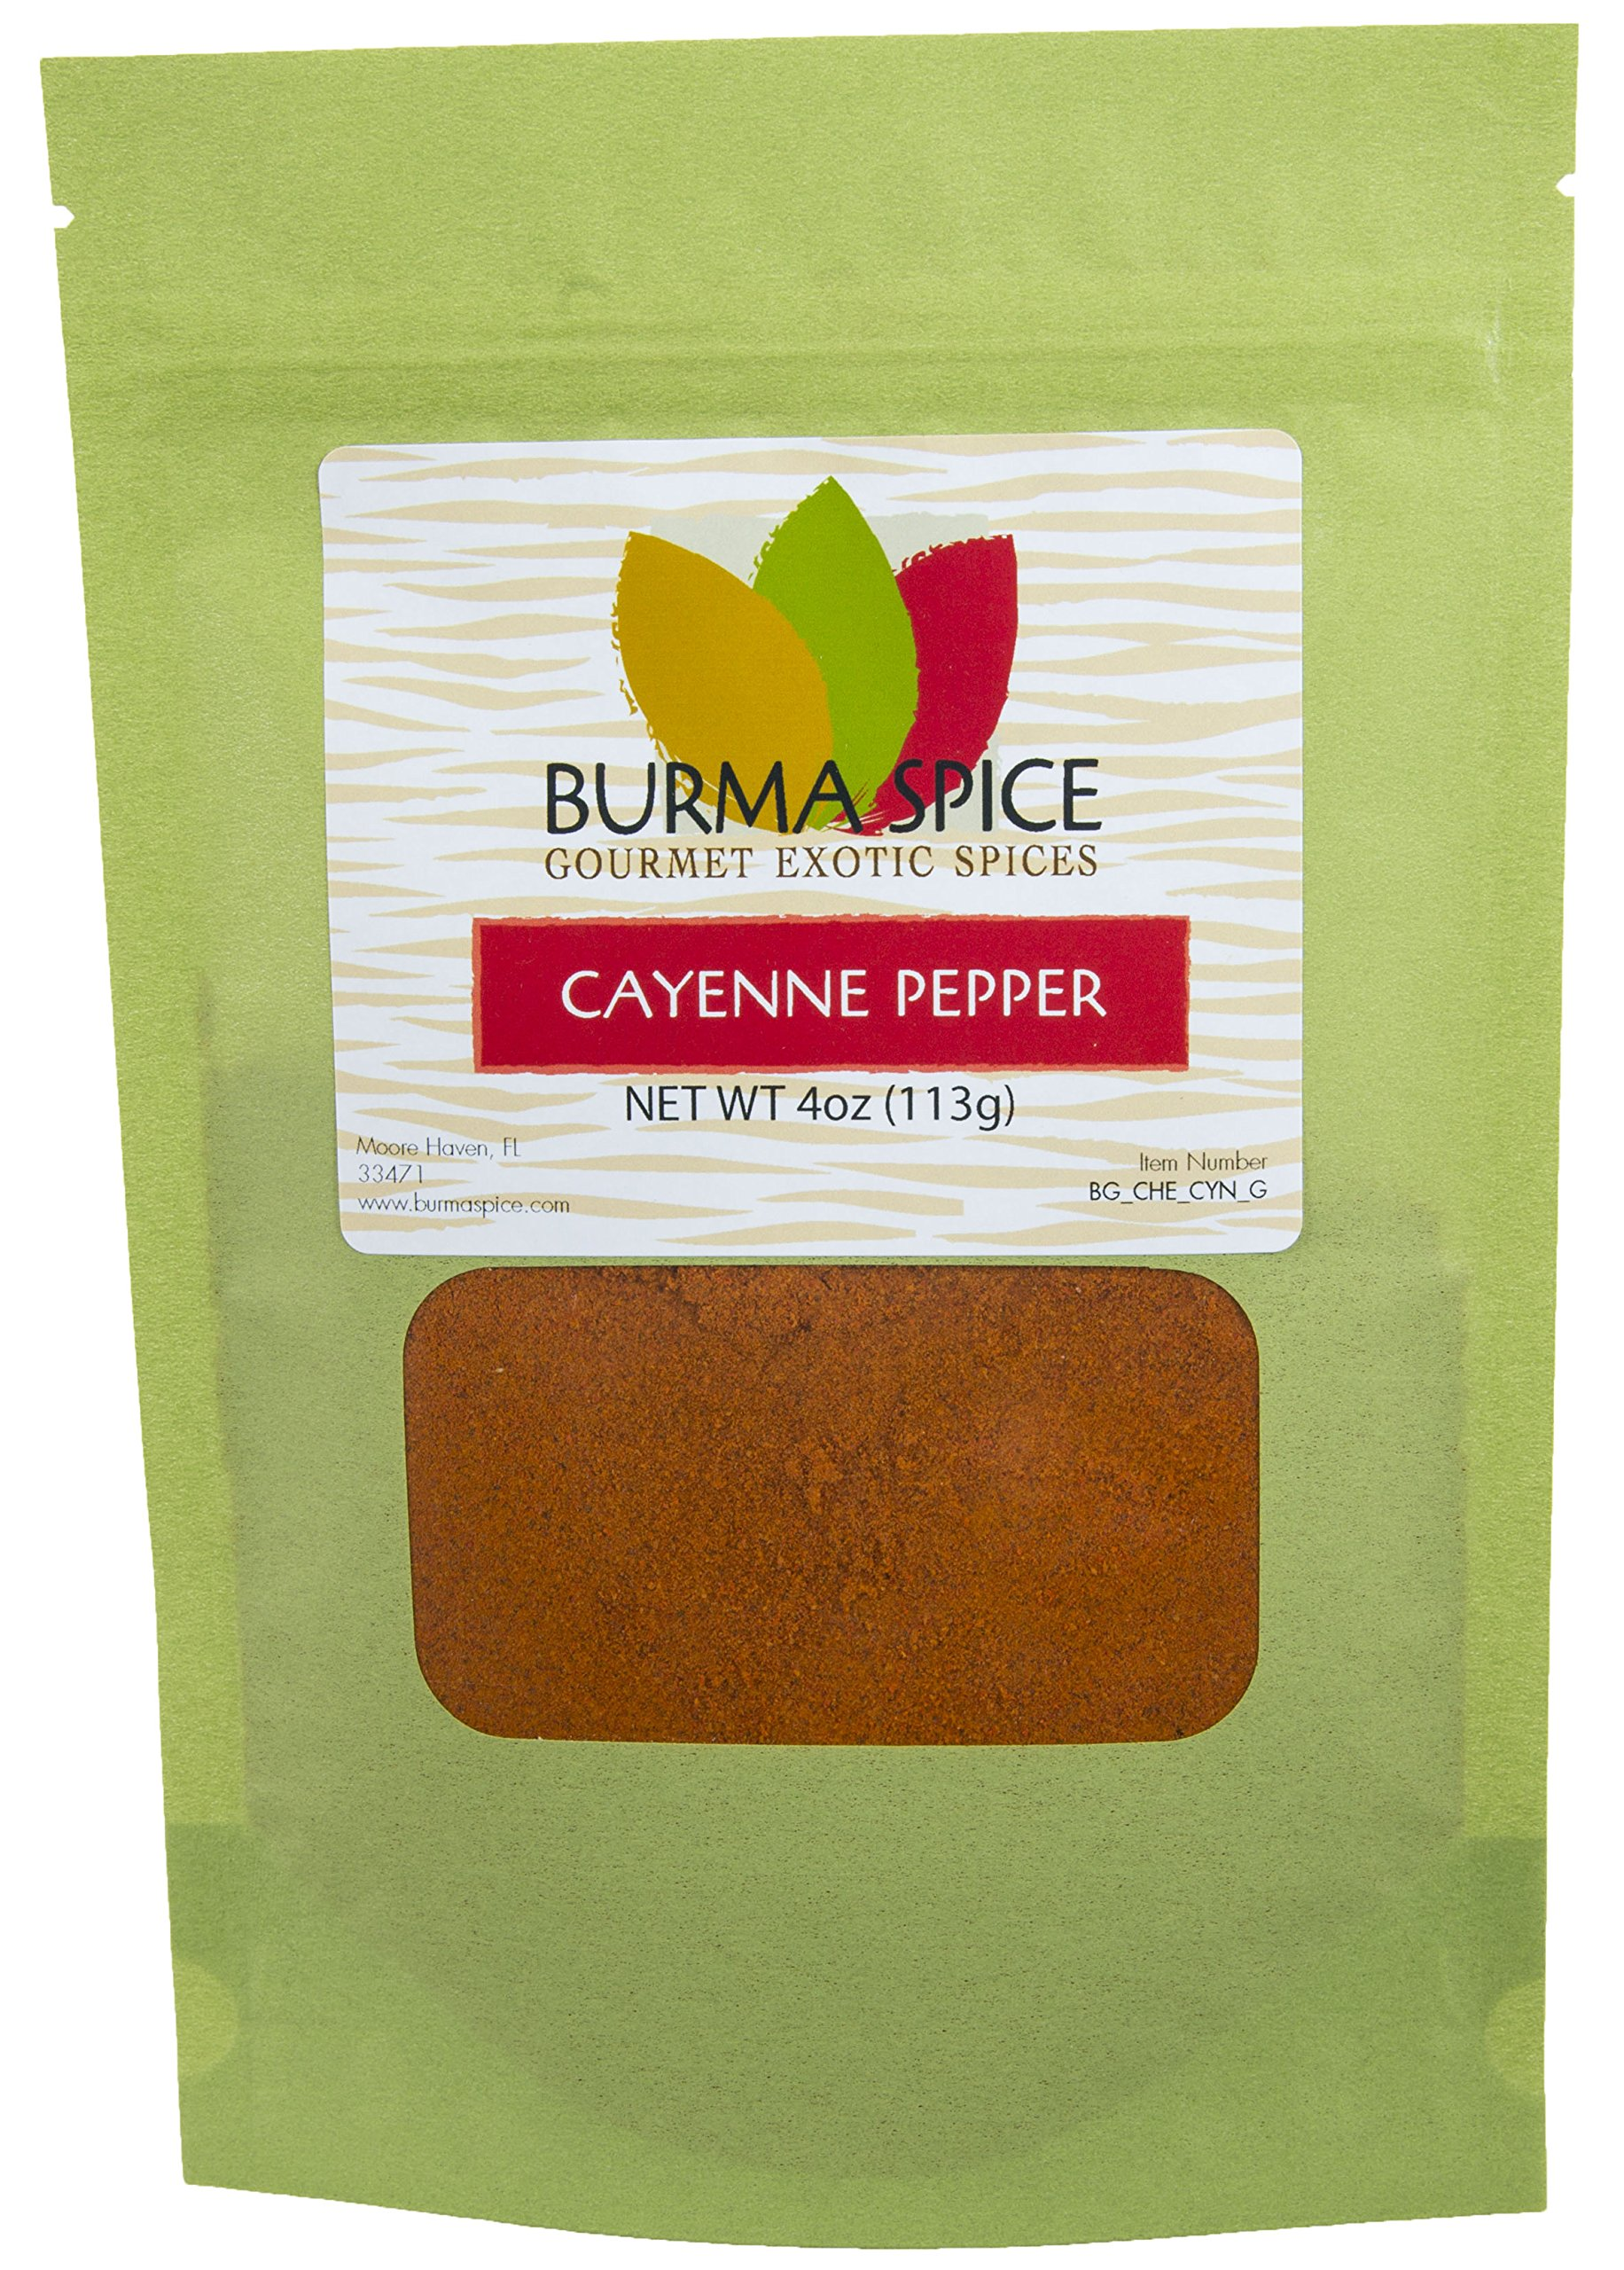 Ground Cayenne Pepper : SOME LIKE IT HOT! - This Cayenne pepper is hotter than most, its perfect to really kick it up a notch (4oz.)